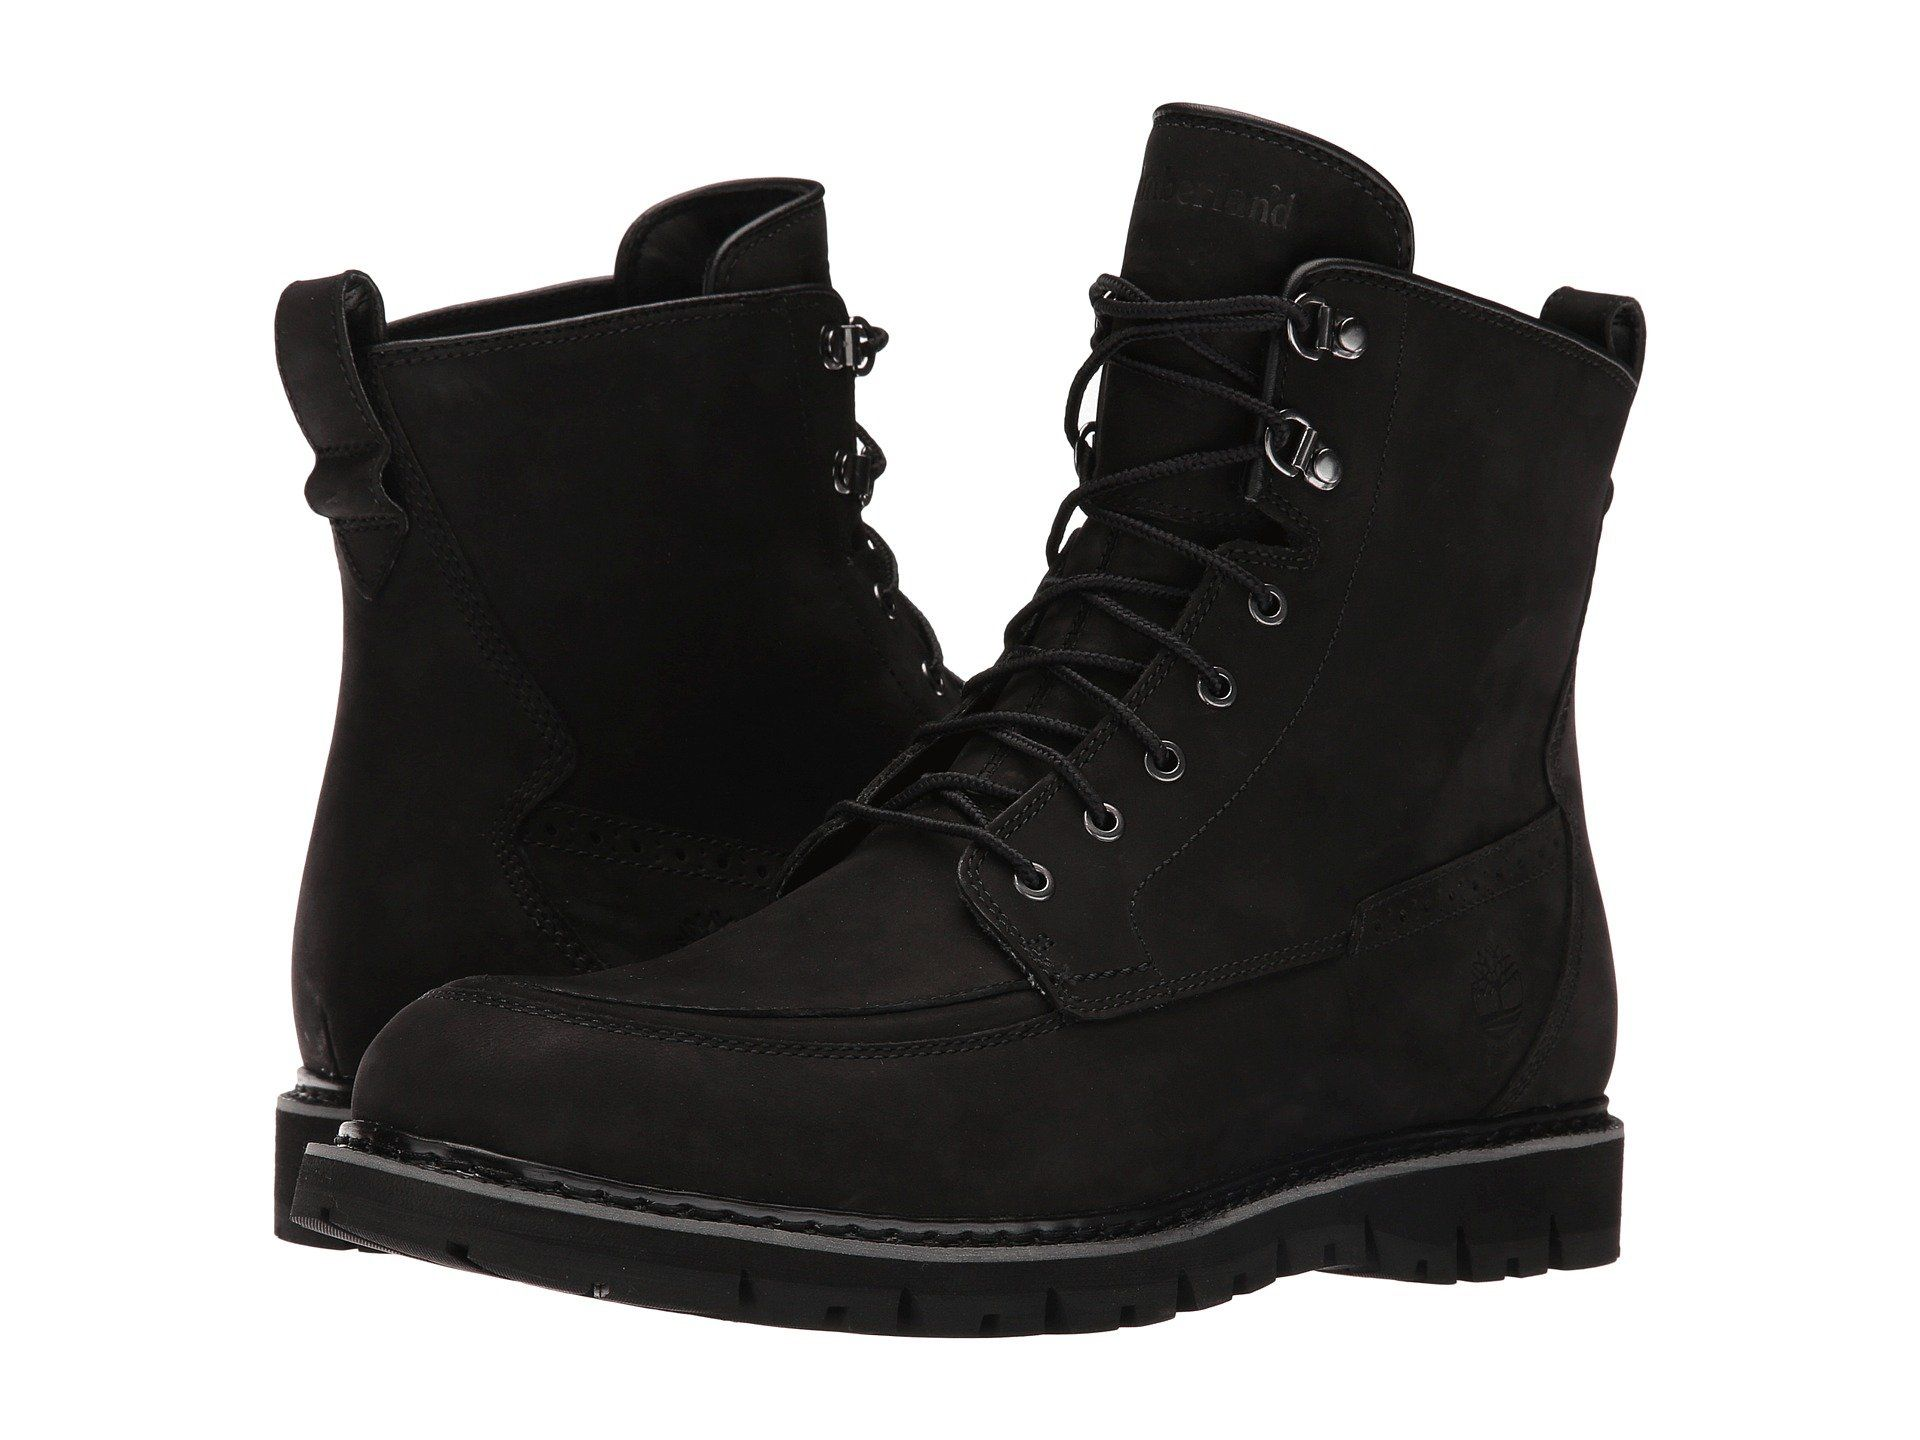 promo code f7b70 3c6e3 Timberland Mens Britton Hill MocToe Waterproof Boot Black Nubuck 9.5 M US      Click